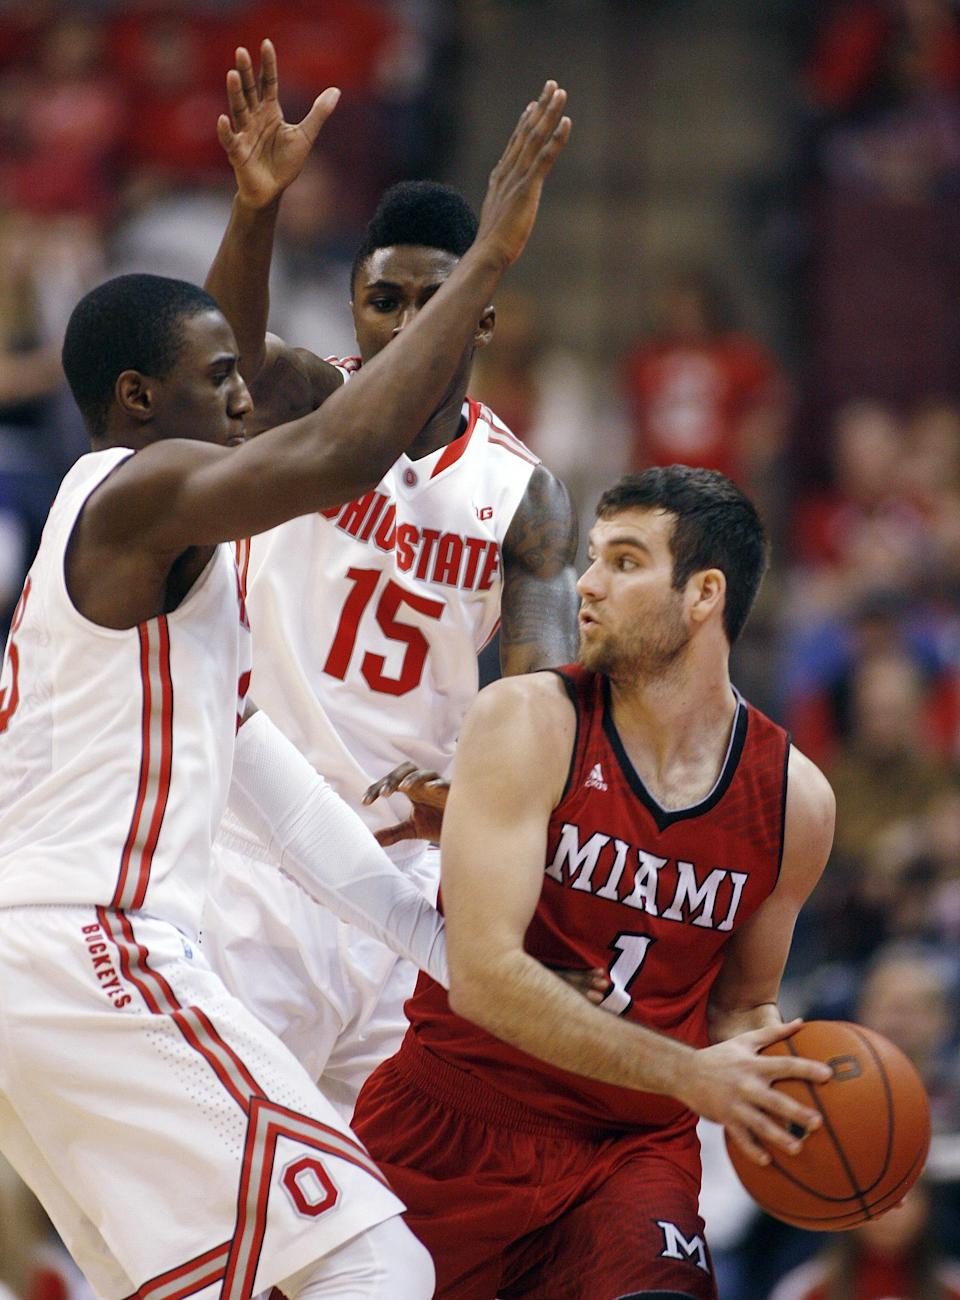 Ohio State's Shannon Scott and Kam Williams (15) pressure Miami's Zack McCormick during the second half of an NCAA college basketball game, Monday, Dec. 22, 2014, in Columbus, Ohio. Ohio State won 93-55. (AP Photo/Mike Munden)